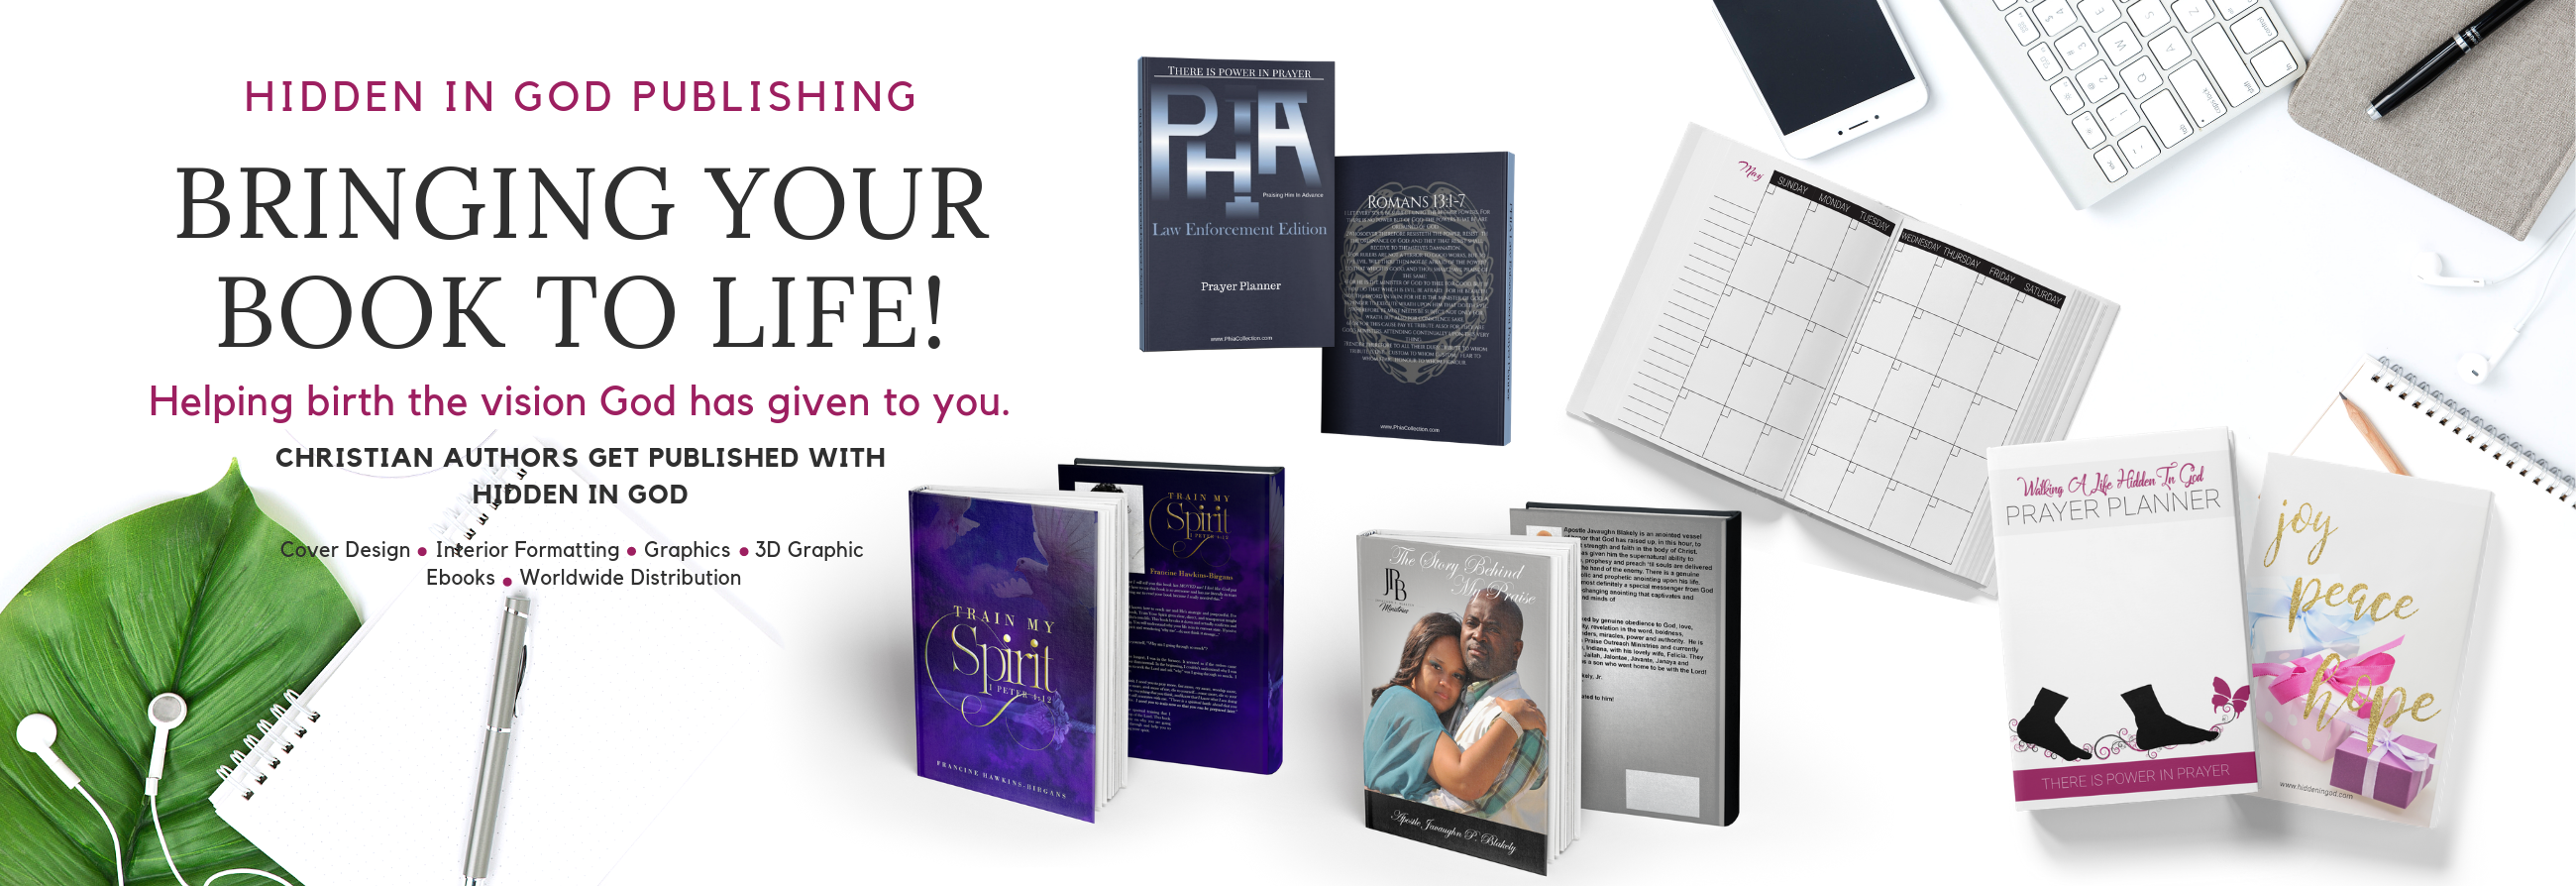 HIG Publishing Banner